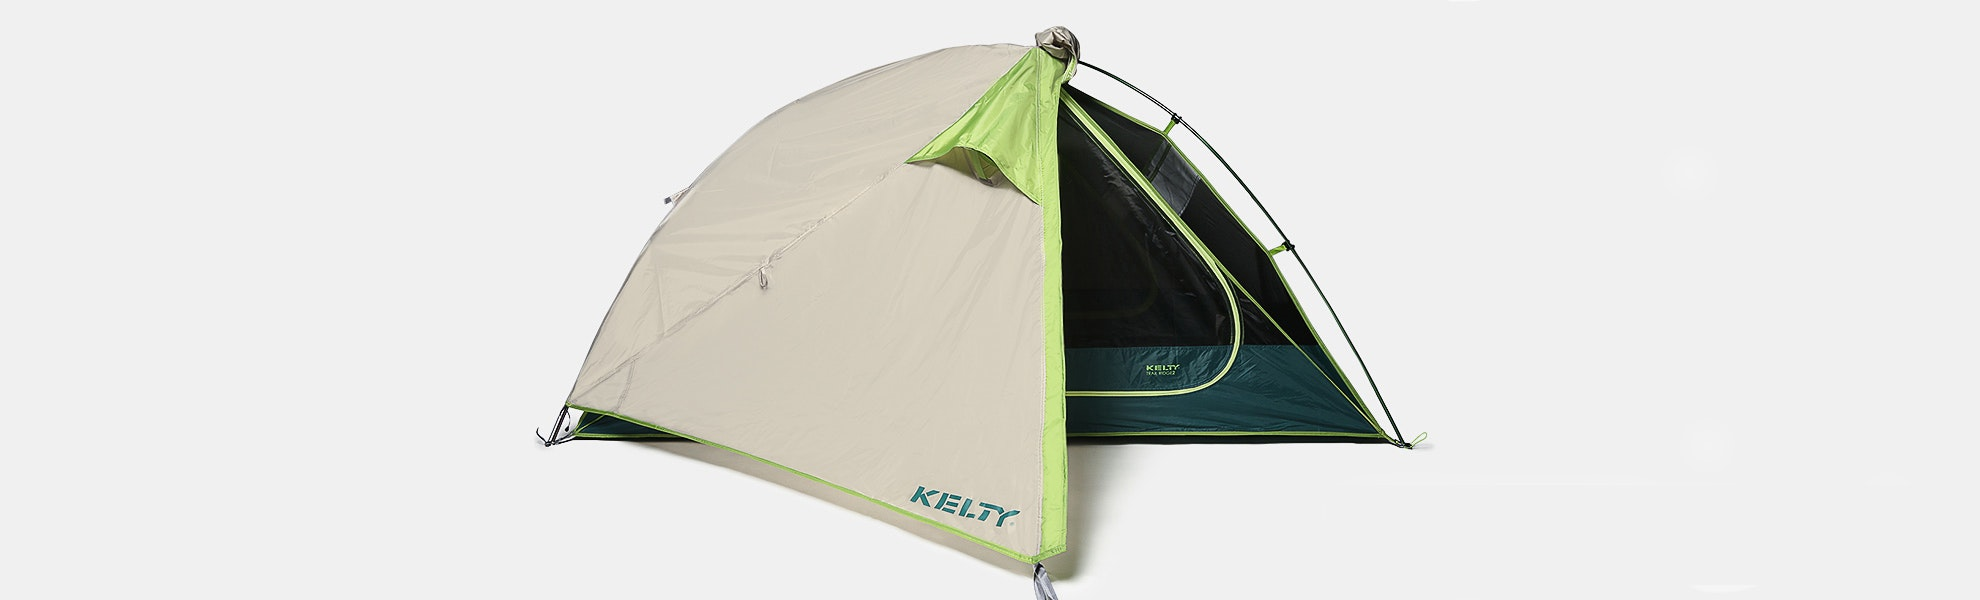 Kelty Trail Ridge Tents w/ Footprints : ridge tent - memphite.com